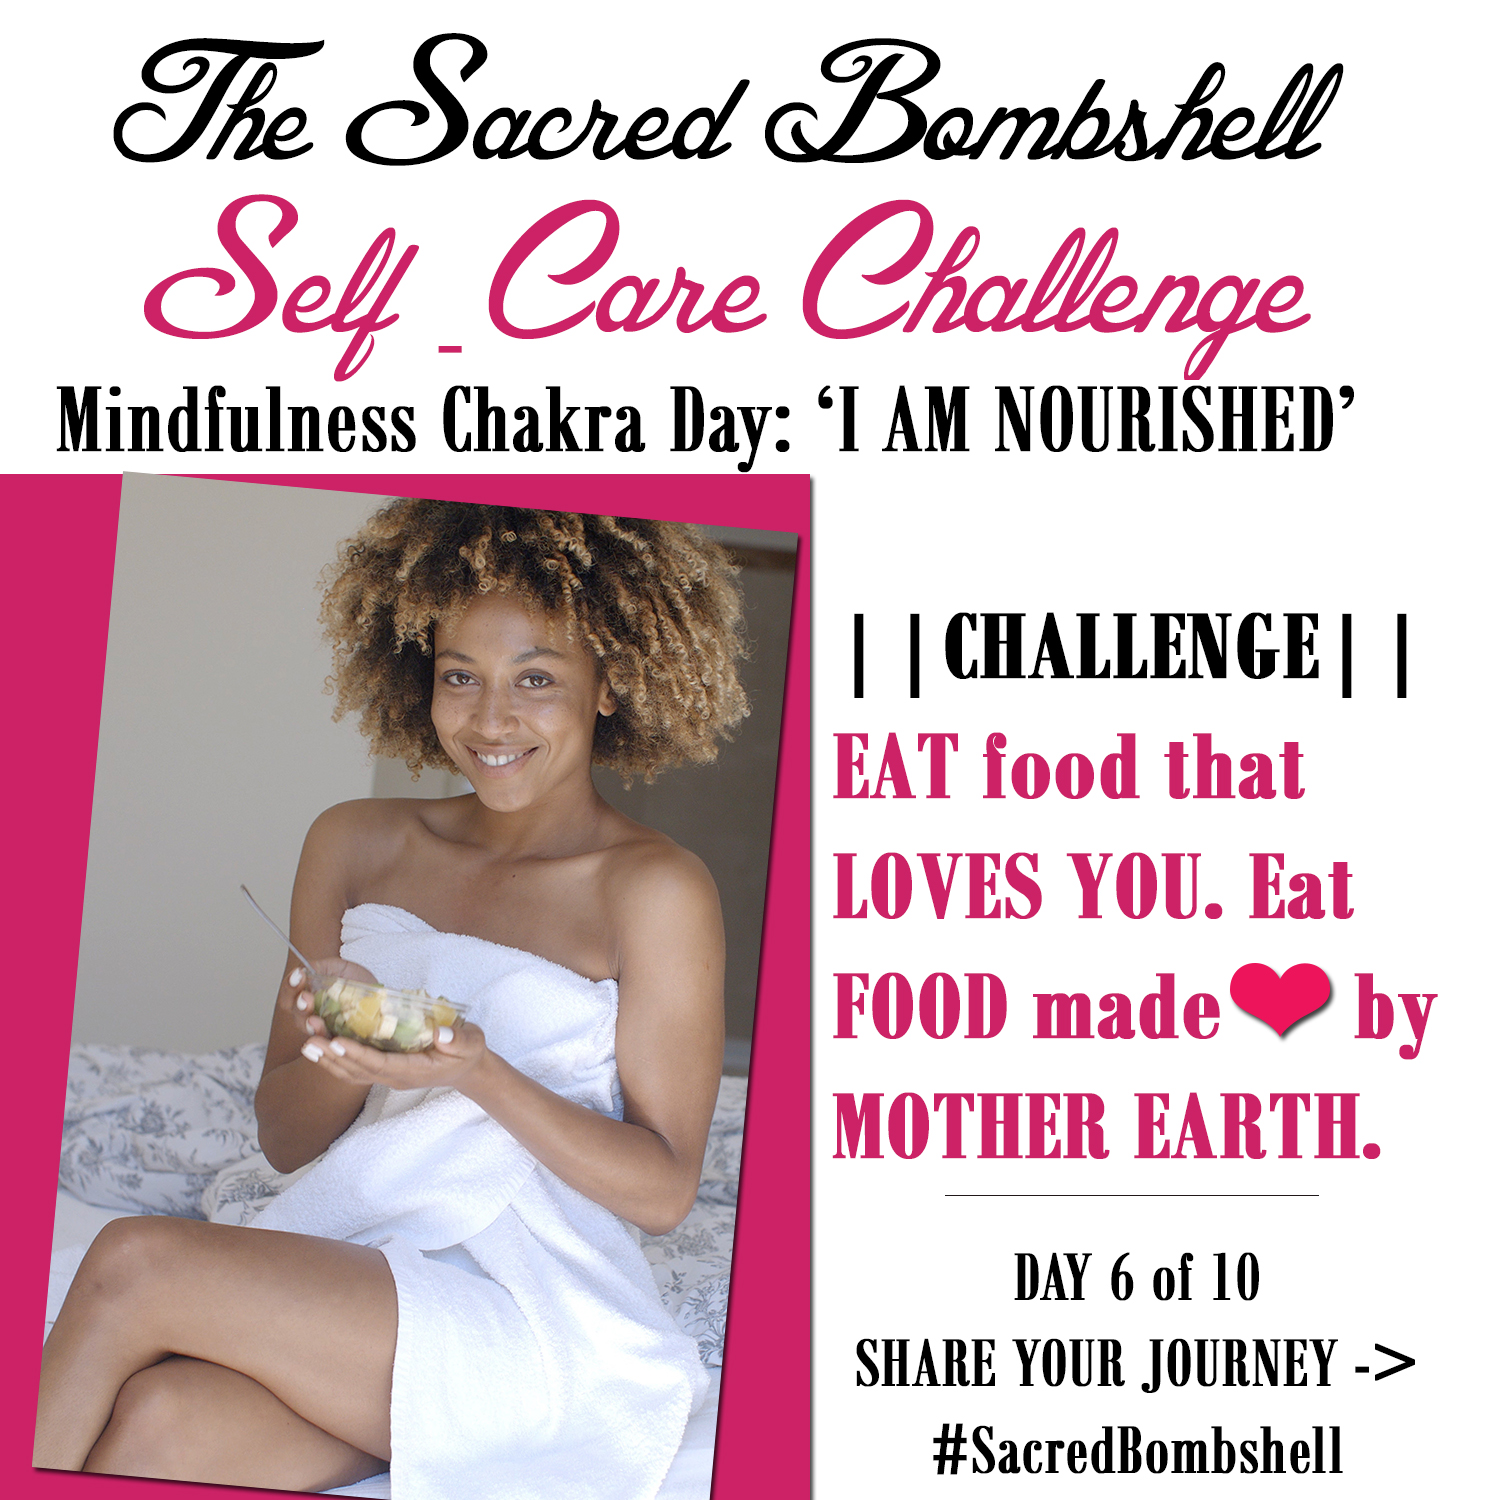 Sacred Bombshell Self-Care Challenge! Day 6 of 10: Your Mindfulness Chakra